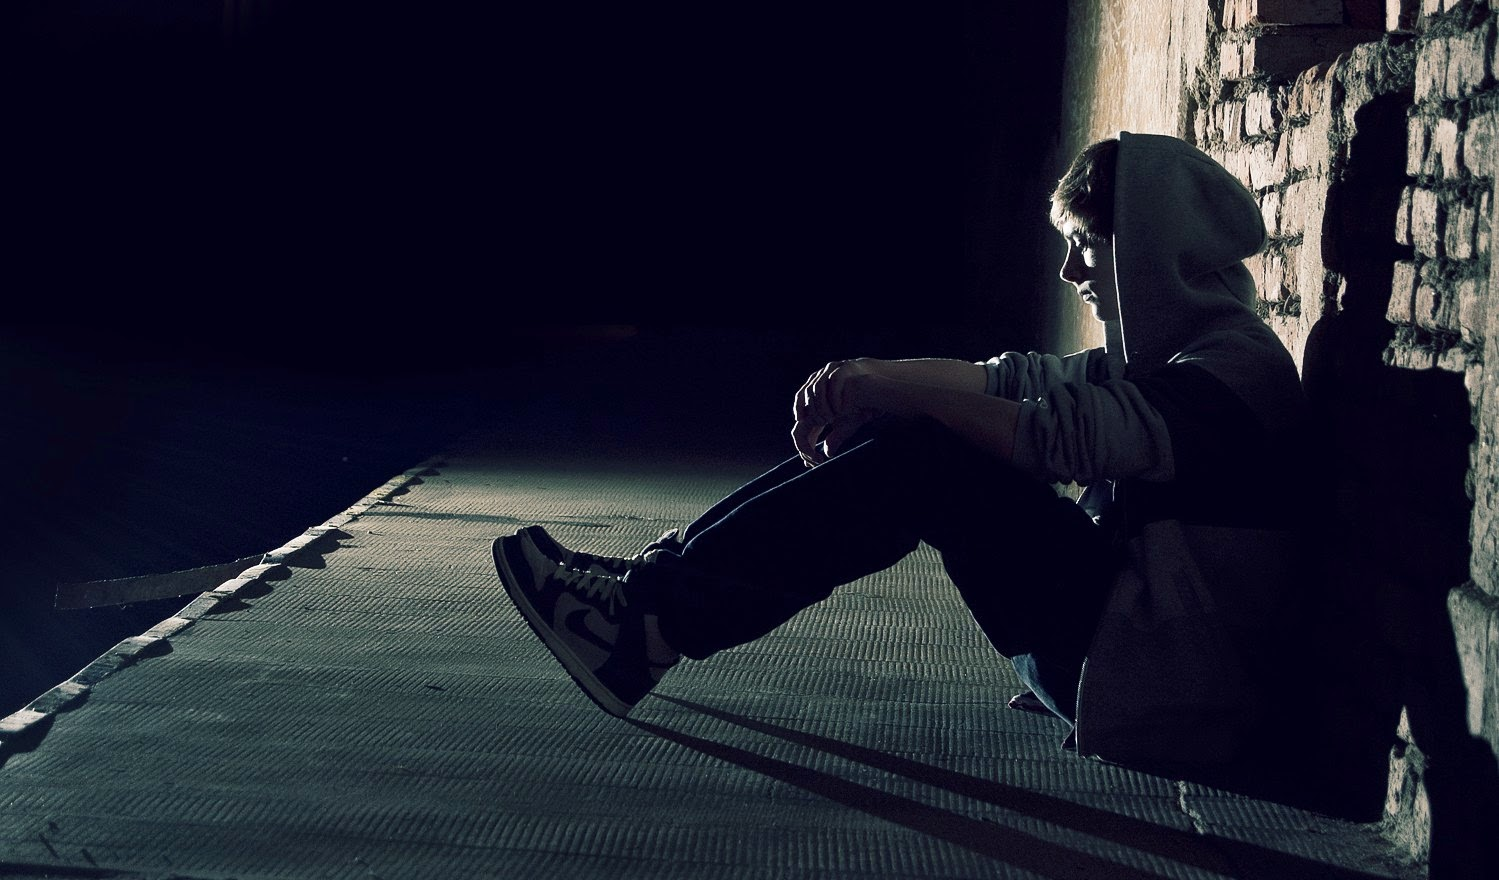 Alone Sad Boy Wallpapers | HD Wallpapers | Download Free High Definition Desktop / PC Wallpapers